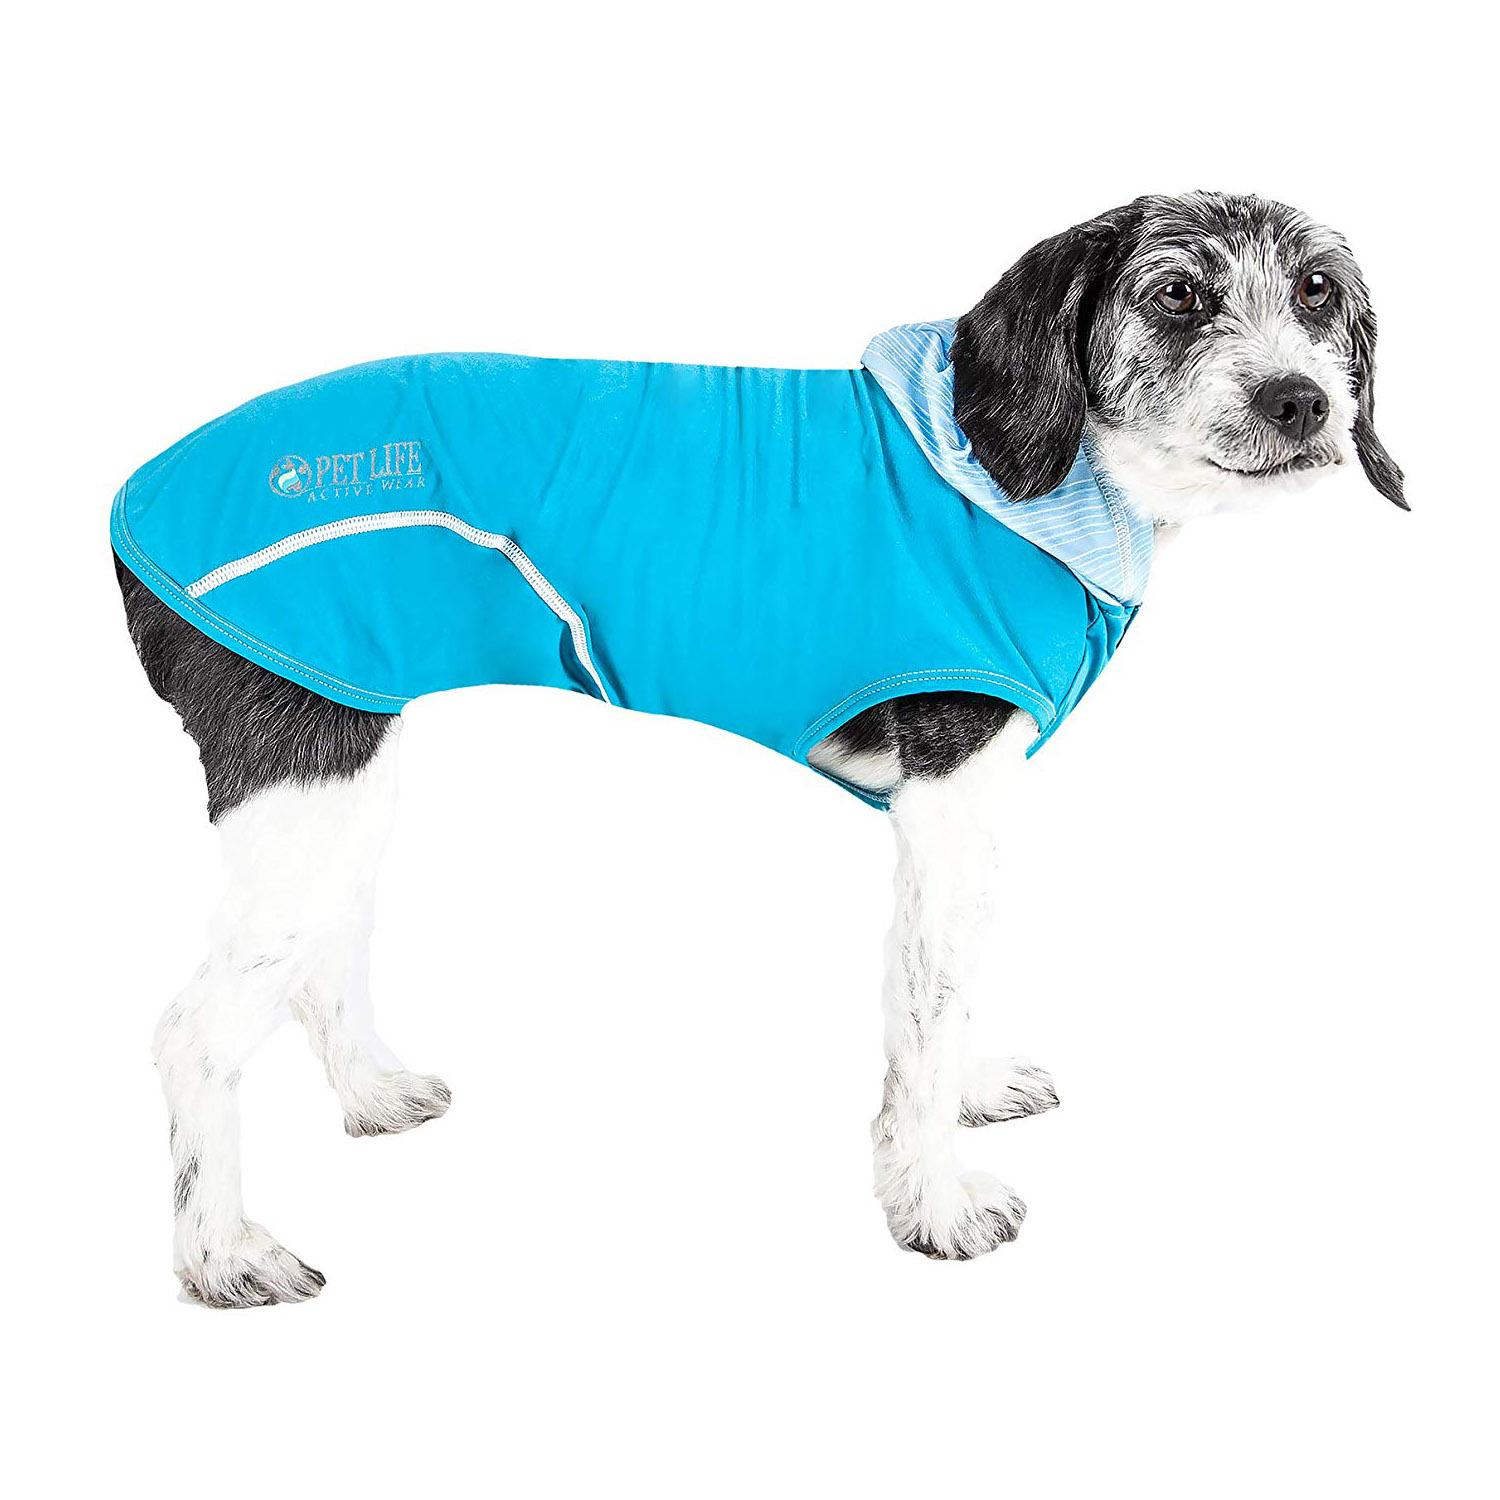 Pet Life ACTIVE 'Pull-Rover' Performance Sleeveless Dog Hoodie - Electric Blue